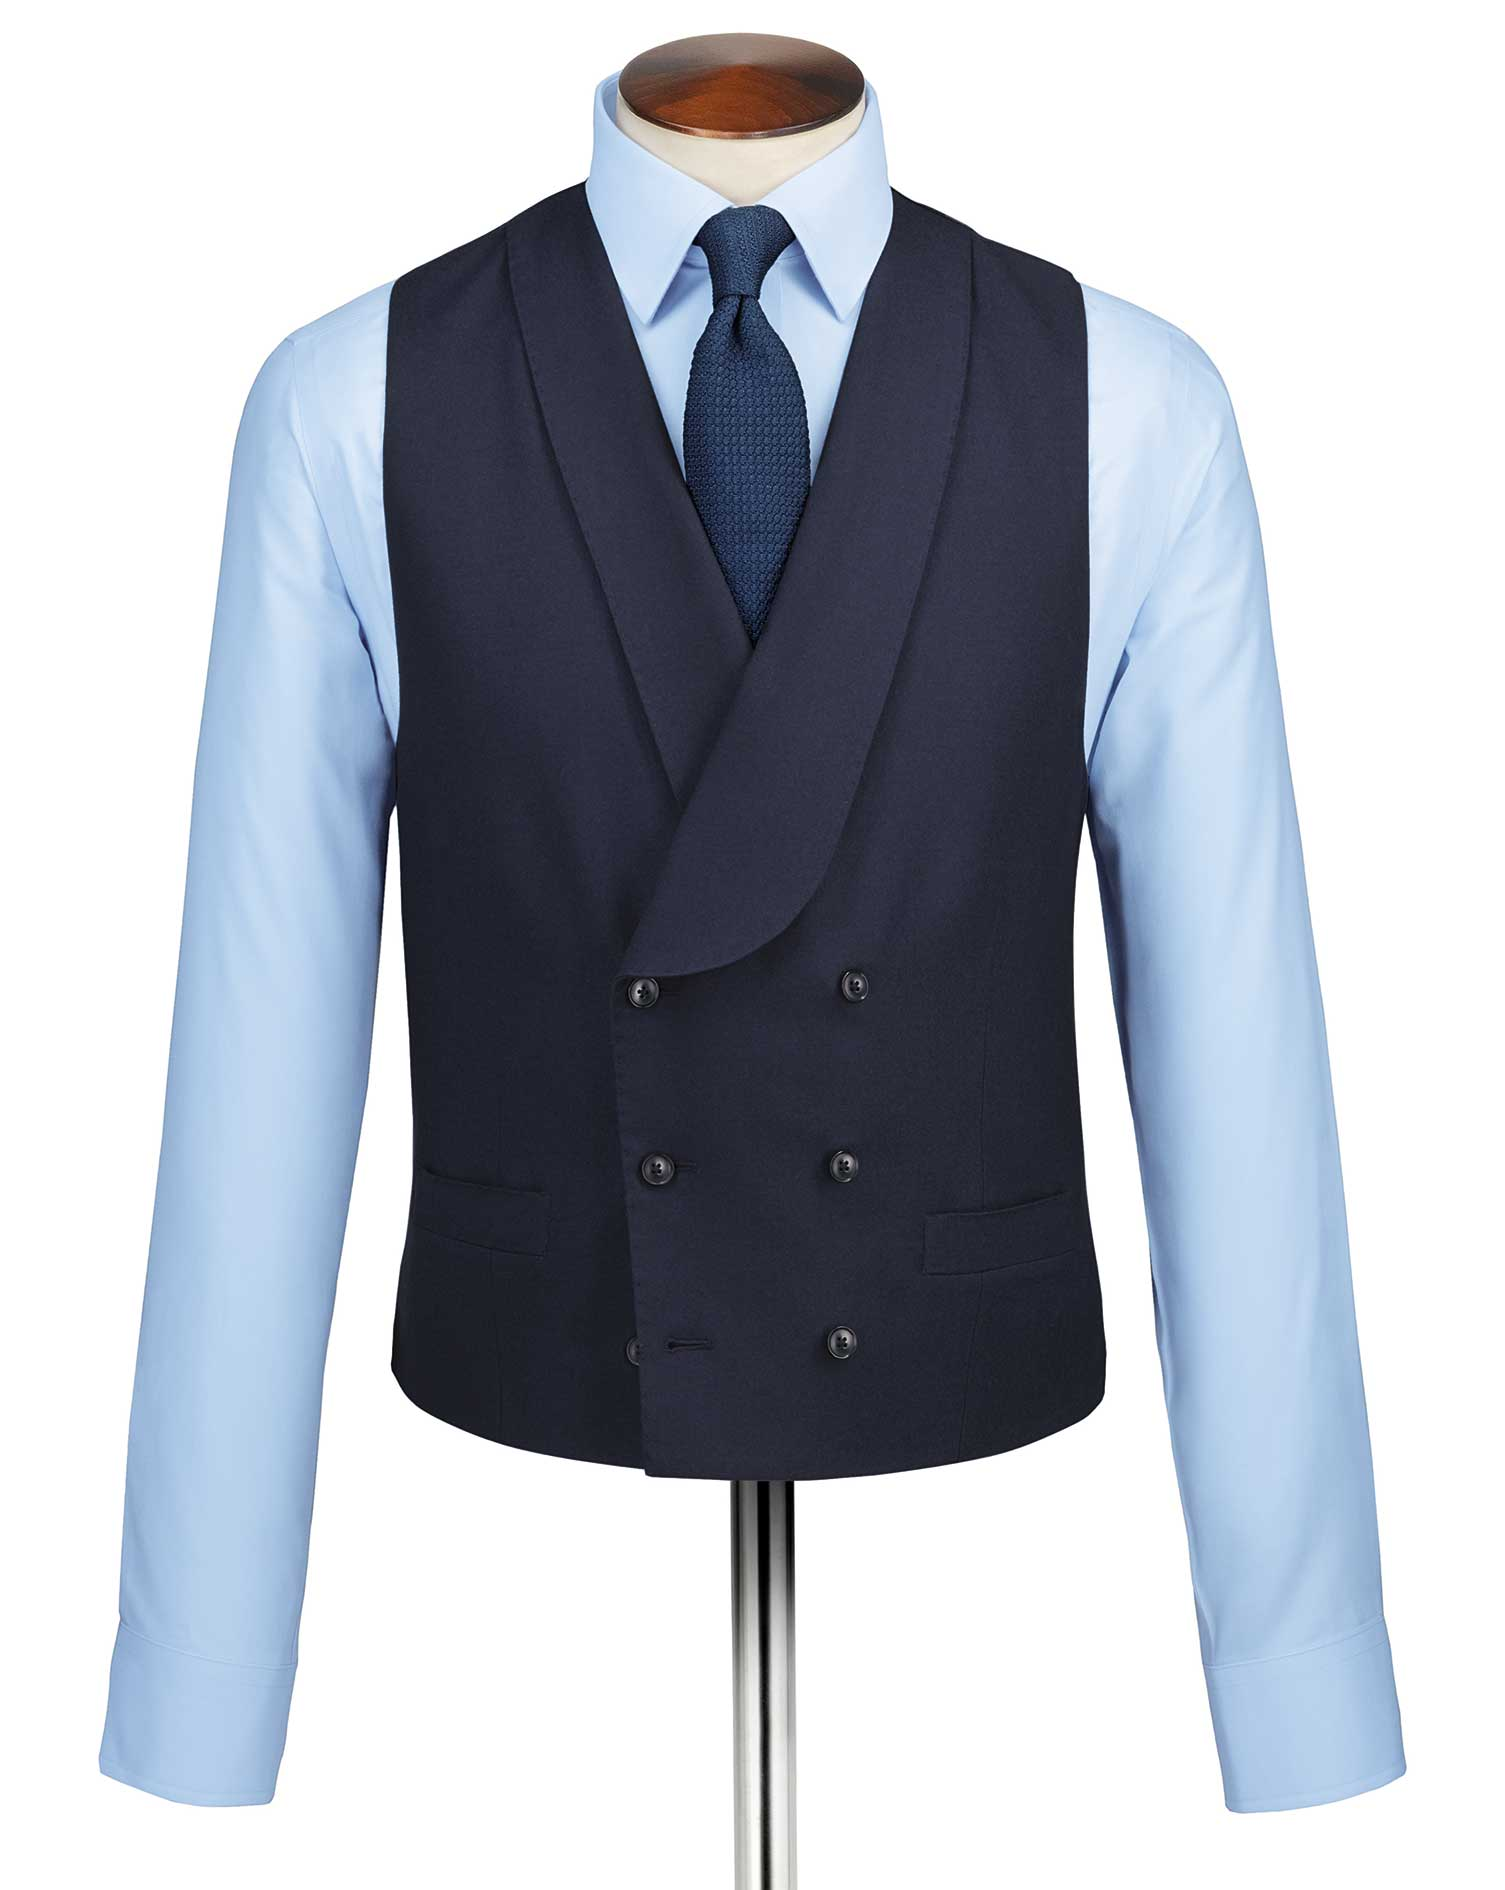 Navy adjustable fit British serge luxury suit vest